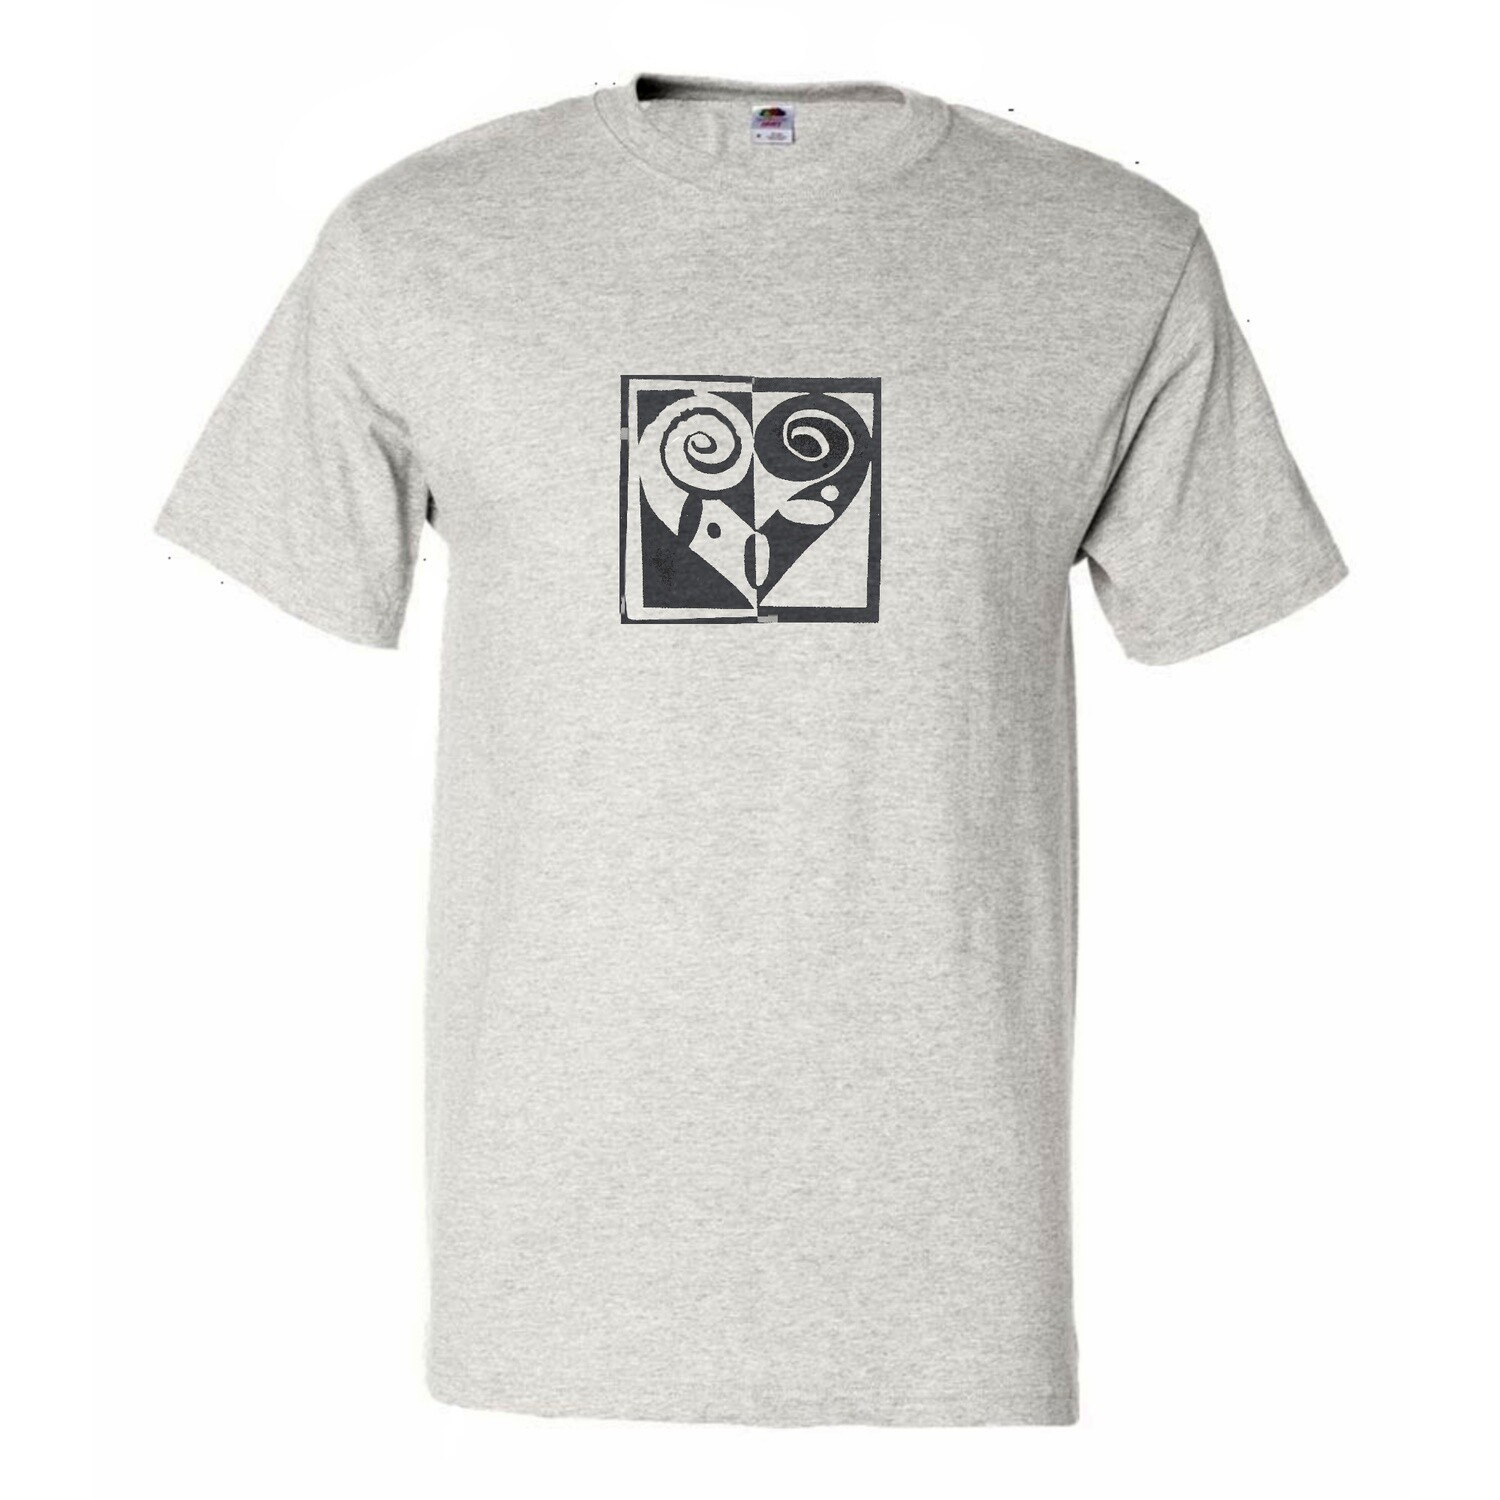 Men's Fiddle Heart T-shirt